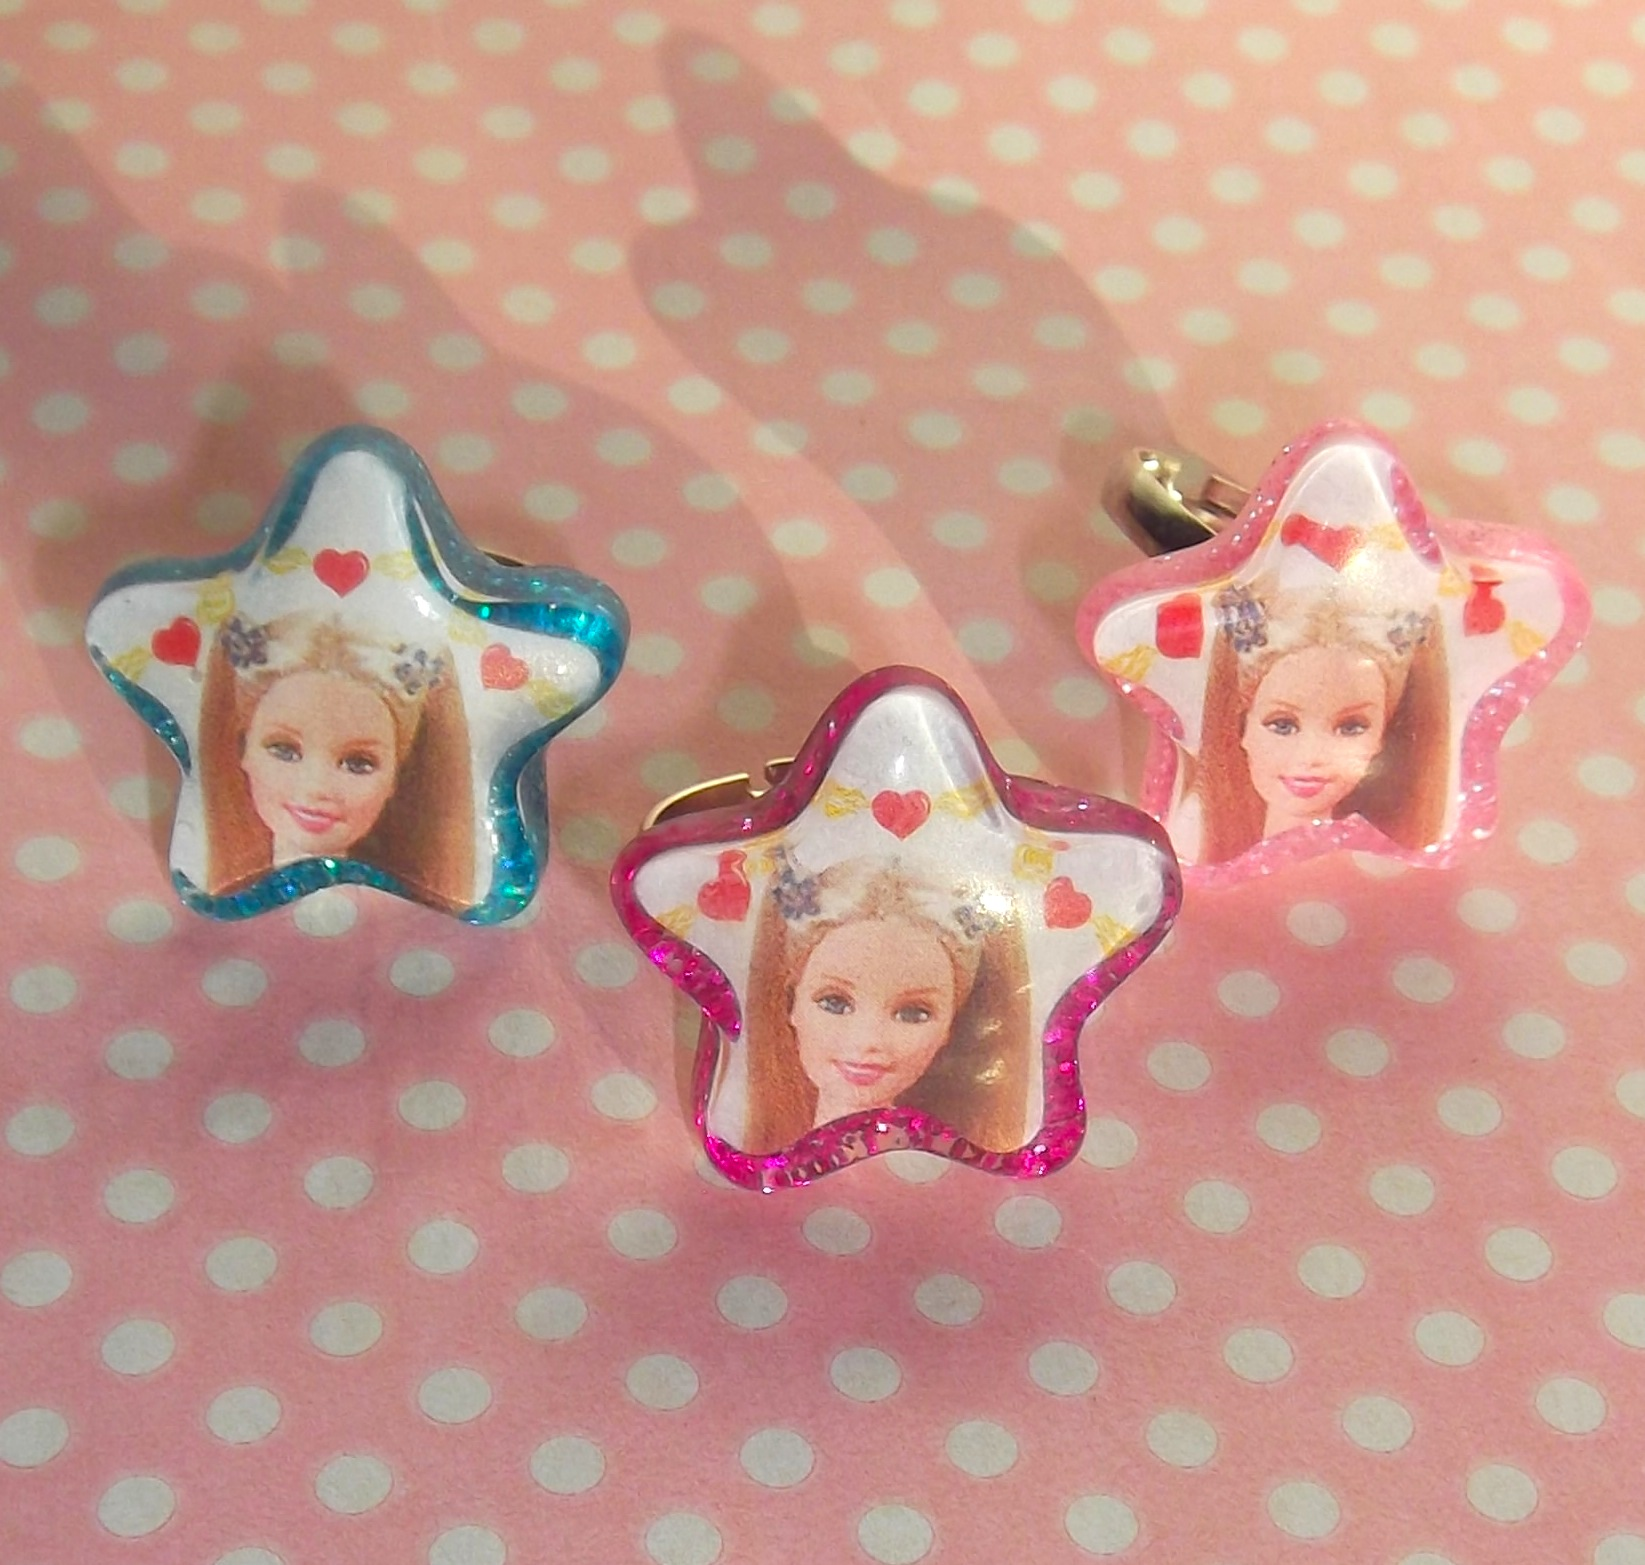 Barbie Nail Art Games Free Download: Kitsch 90s Barbie Glitter Star Rings In Hot Pink, Baby